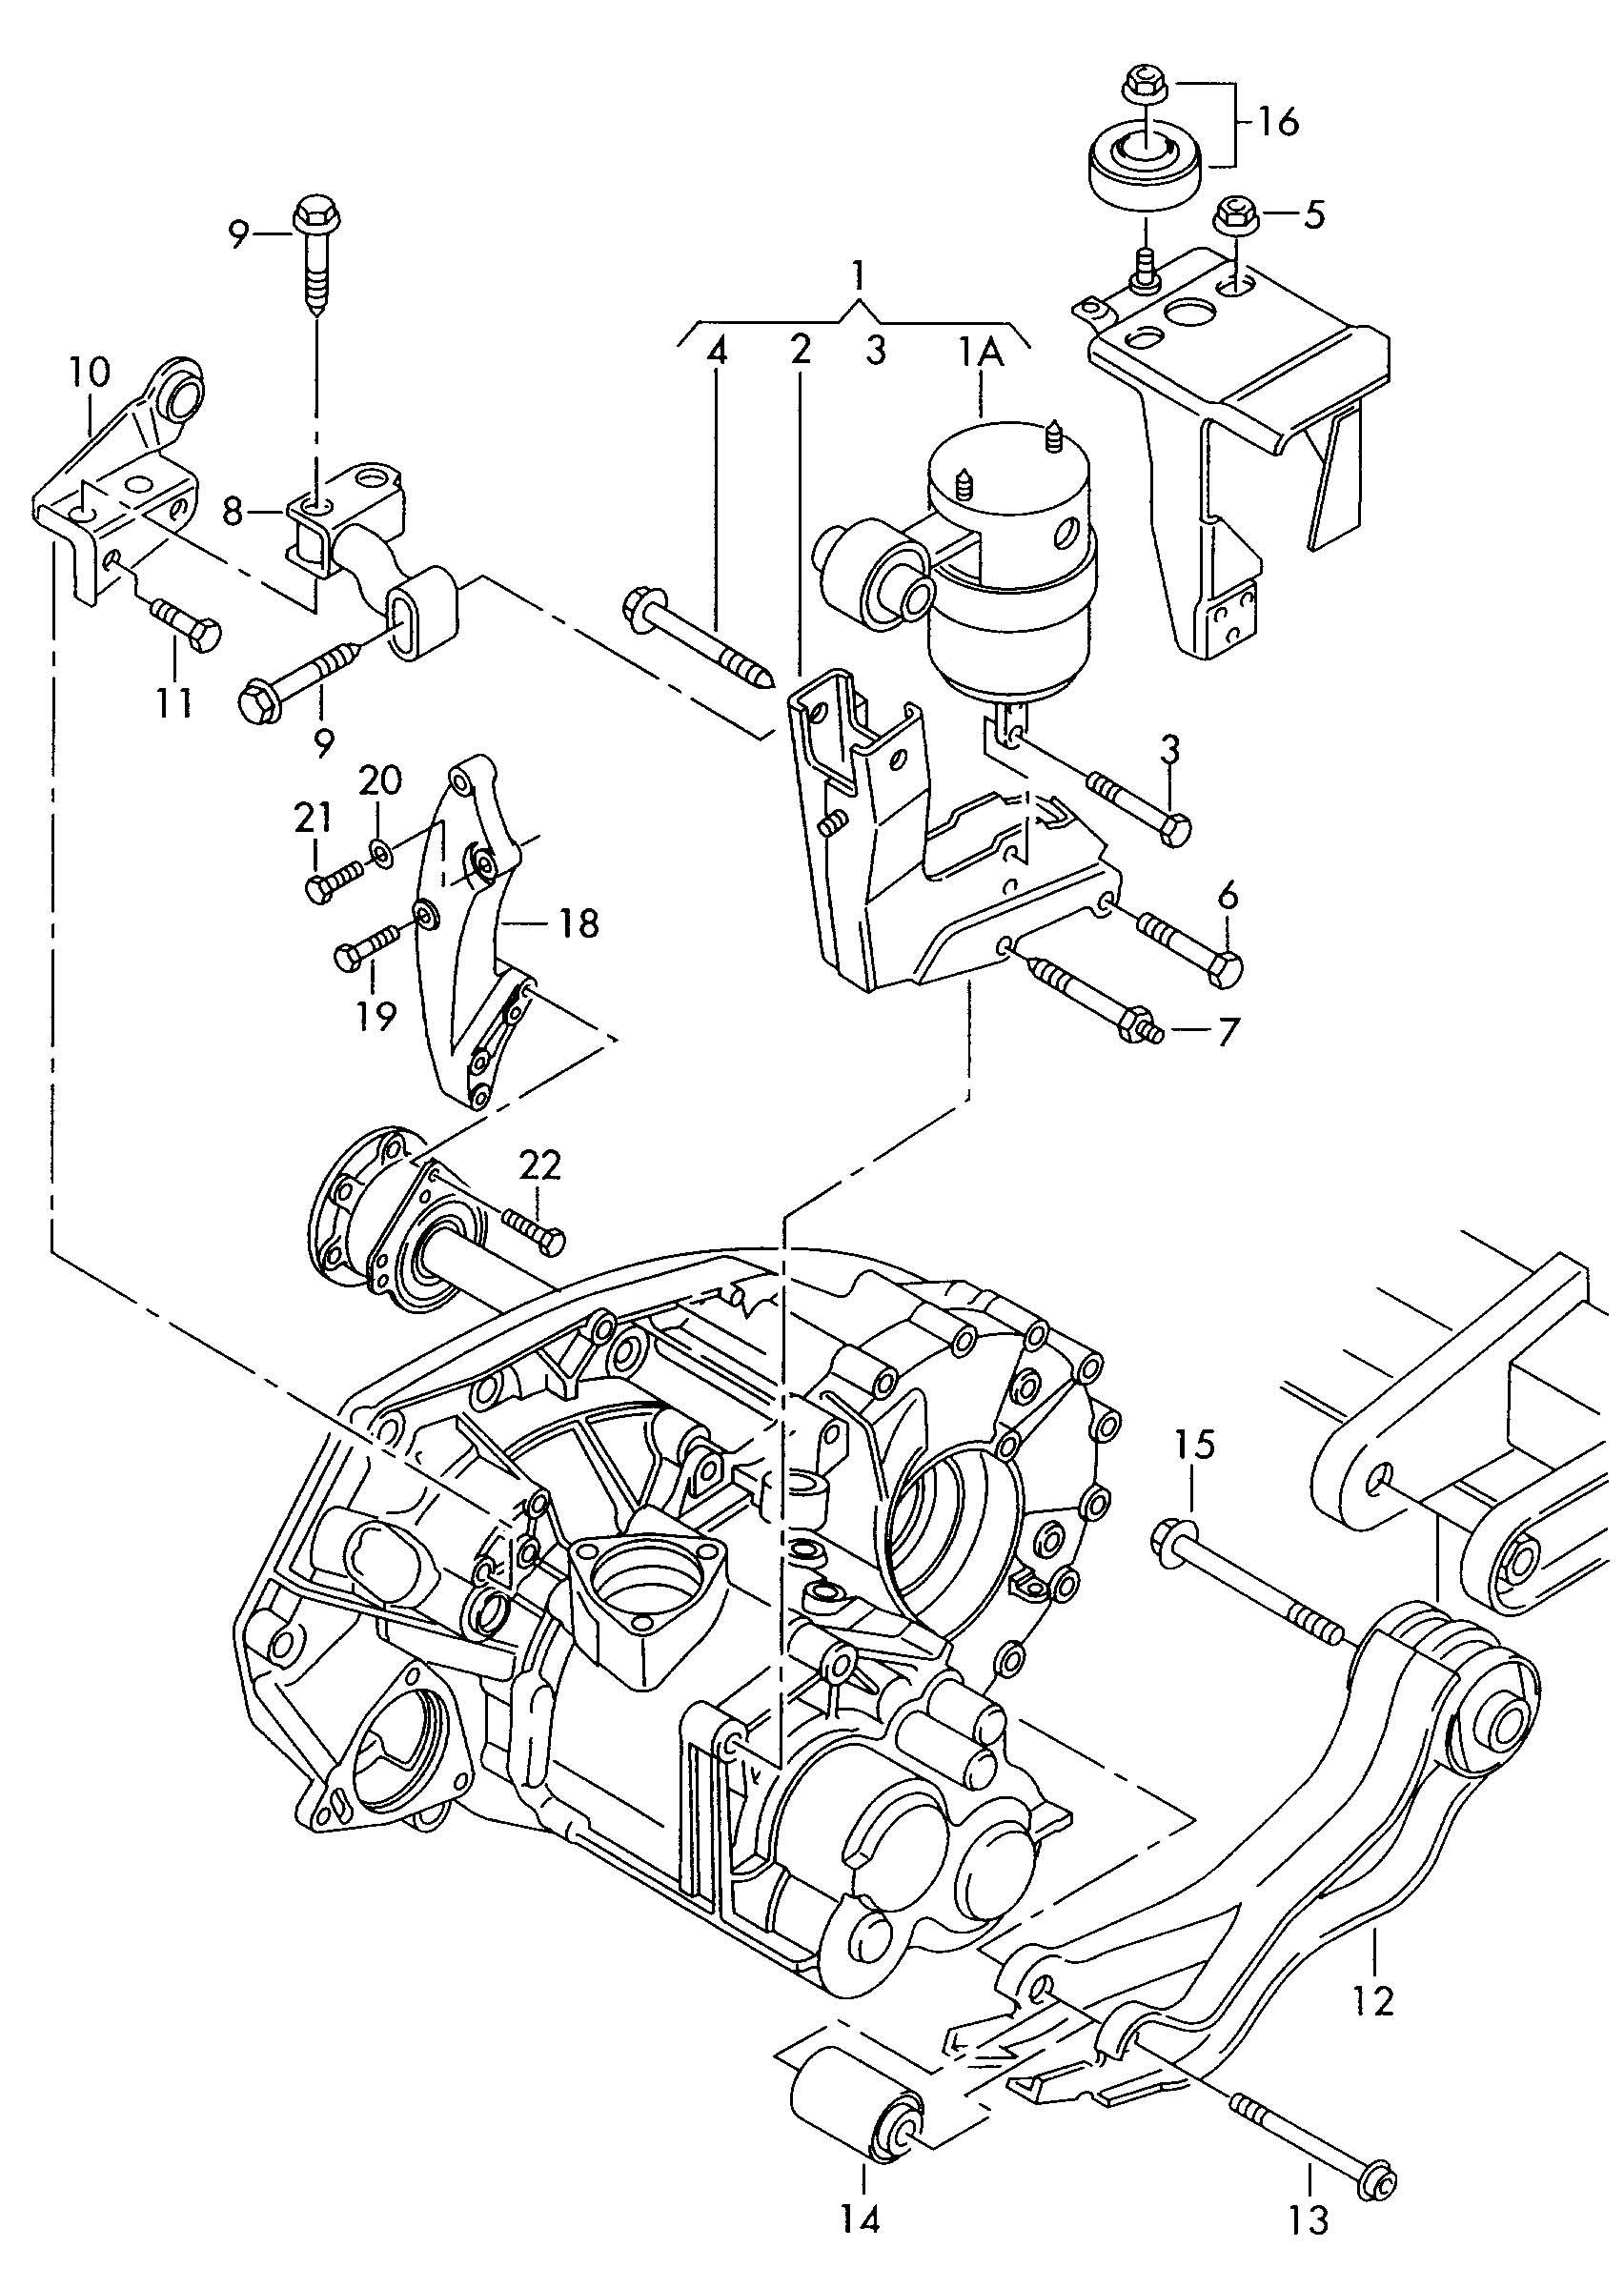 Nv3500 Manual Transmission Diagram likewise Ford 302 Horsepower Tips as well 730 moreover Mercury  et 1964 Instrument Wiring together with Delphi Alternator Wiring. on tr6 wiring diagram